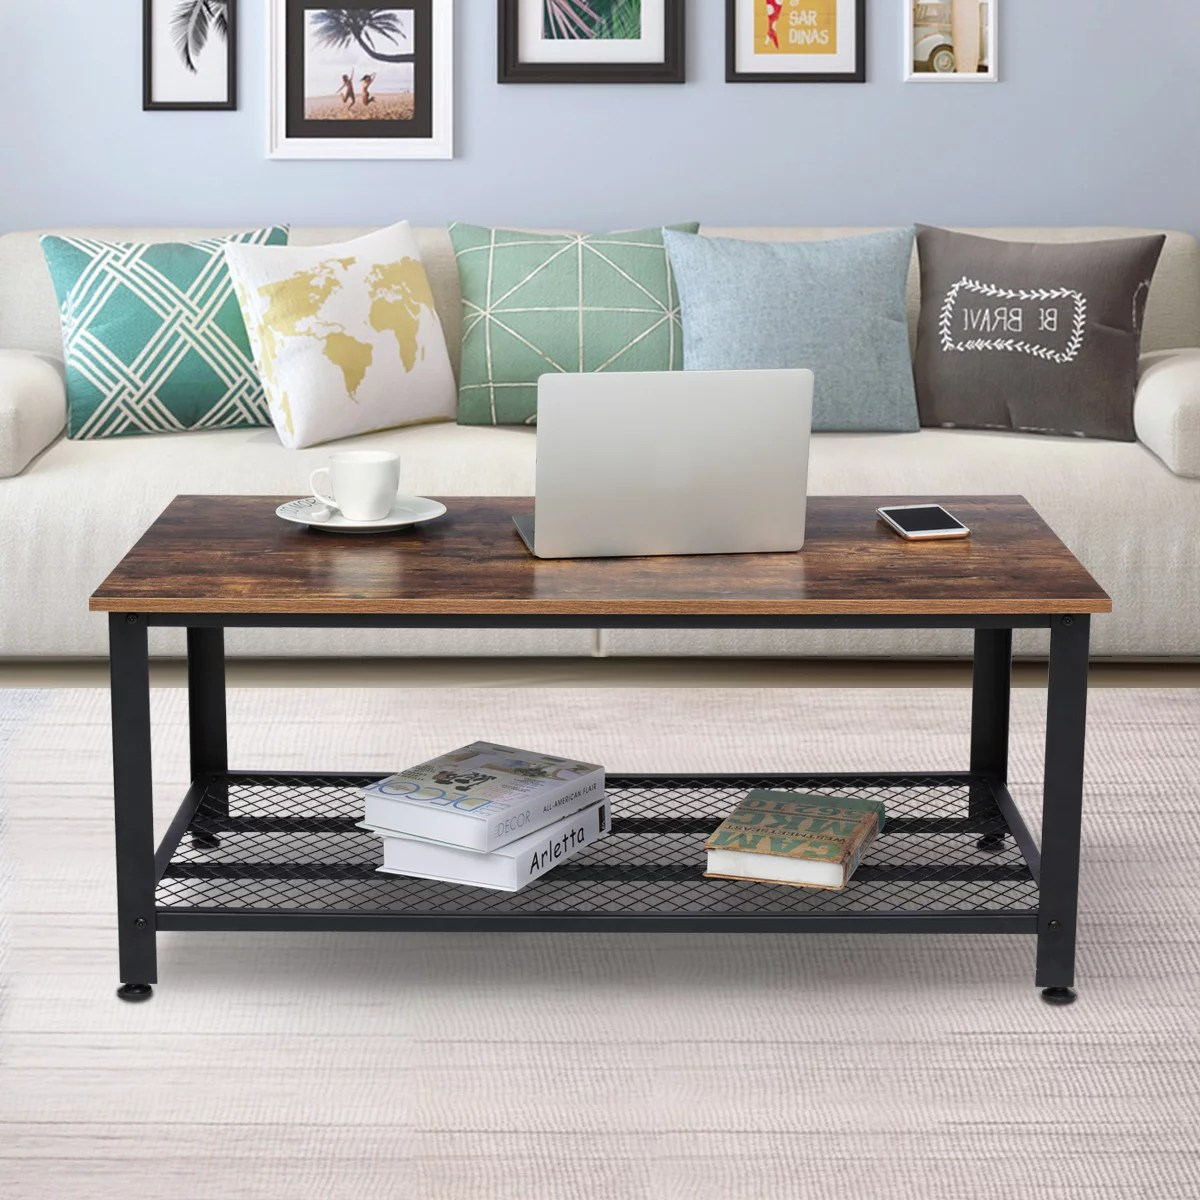 industrial coffee table with storage drawers for living room cocktail end tables wood furniture with metal frame walmart com